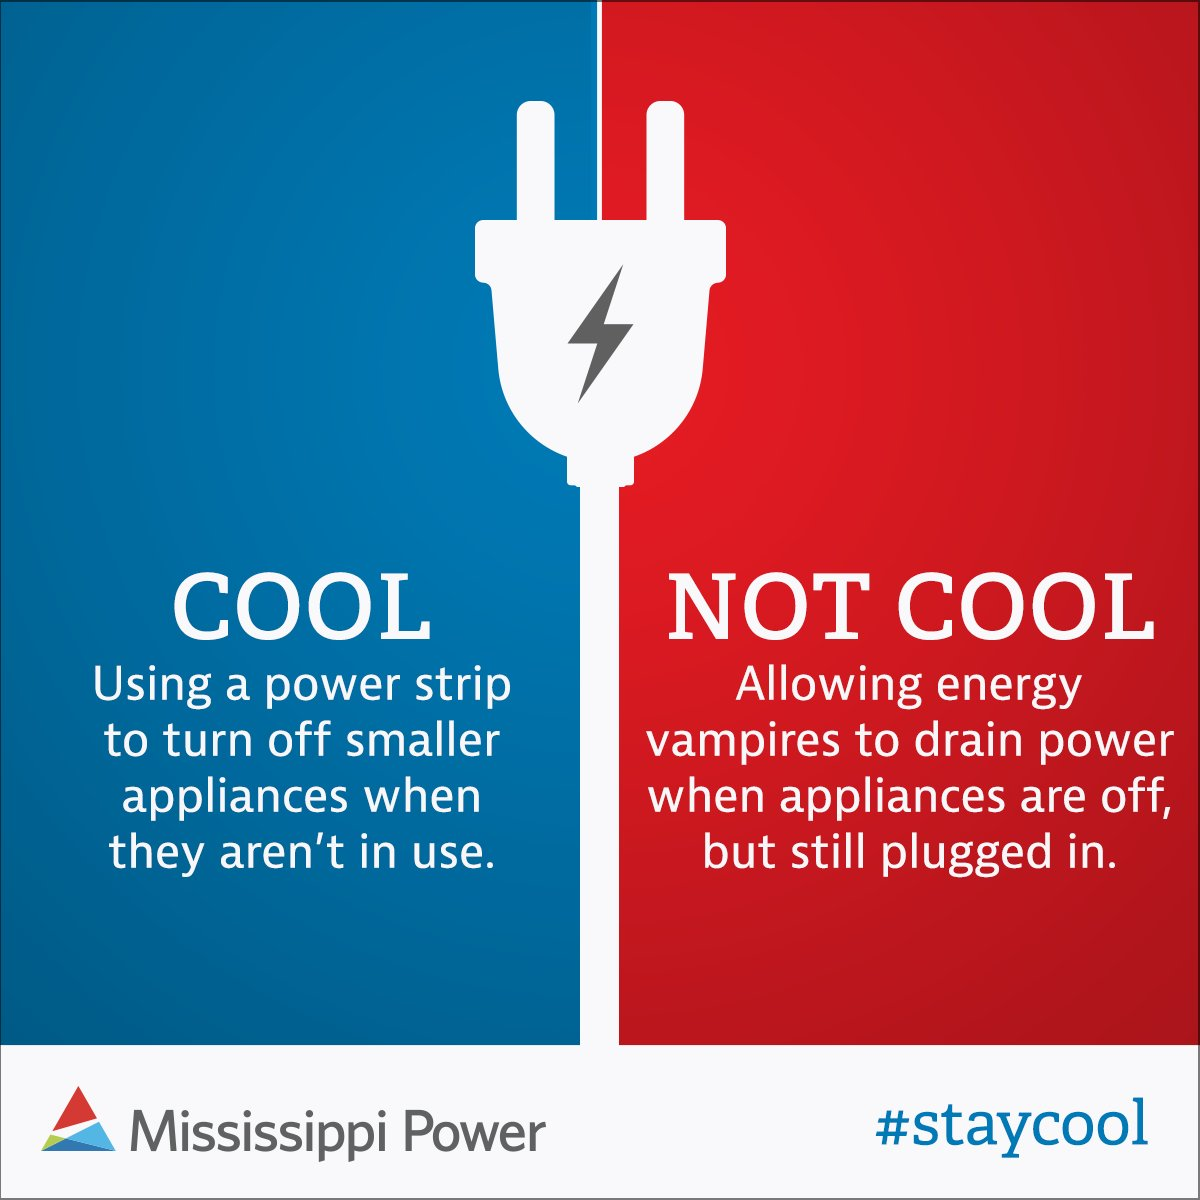 Mississippi Power On Twitter Want An Easy Way To Save Energy Use Turn Off Unplug A Strip As Central For Your Electronics Or Simply Devices When Not In You Can Up 100 Per Year